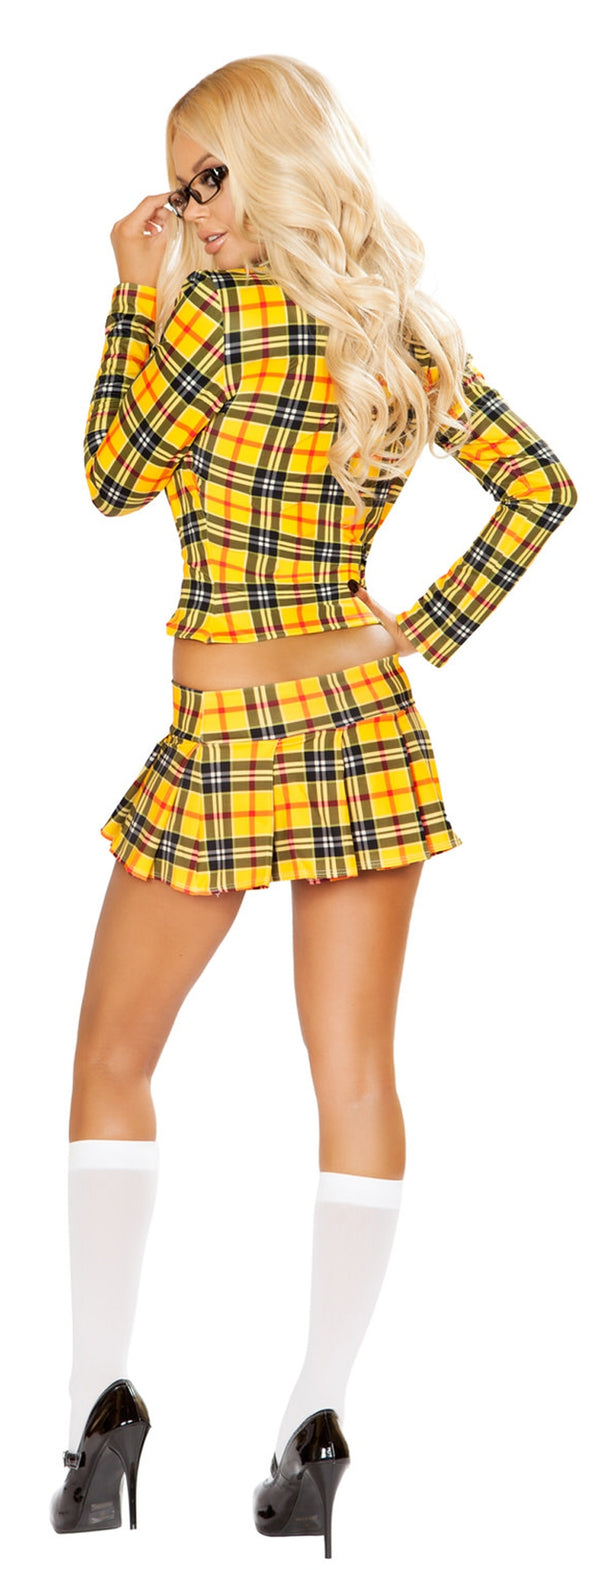 RM-4830 School Girl Costume back